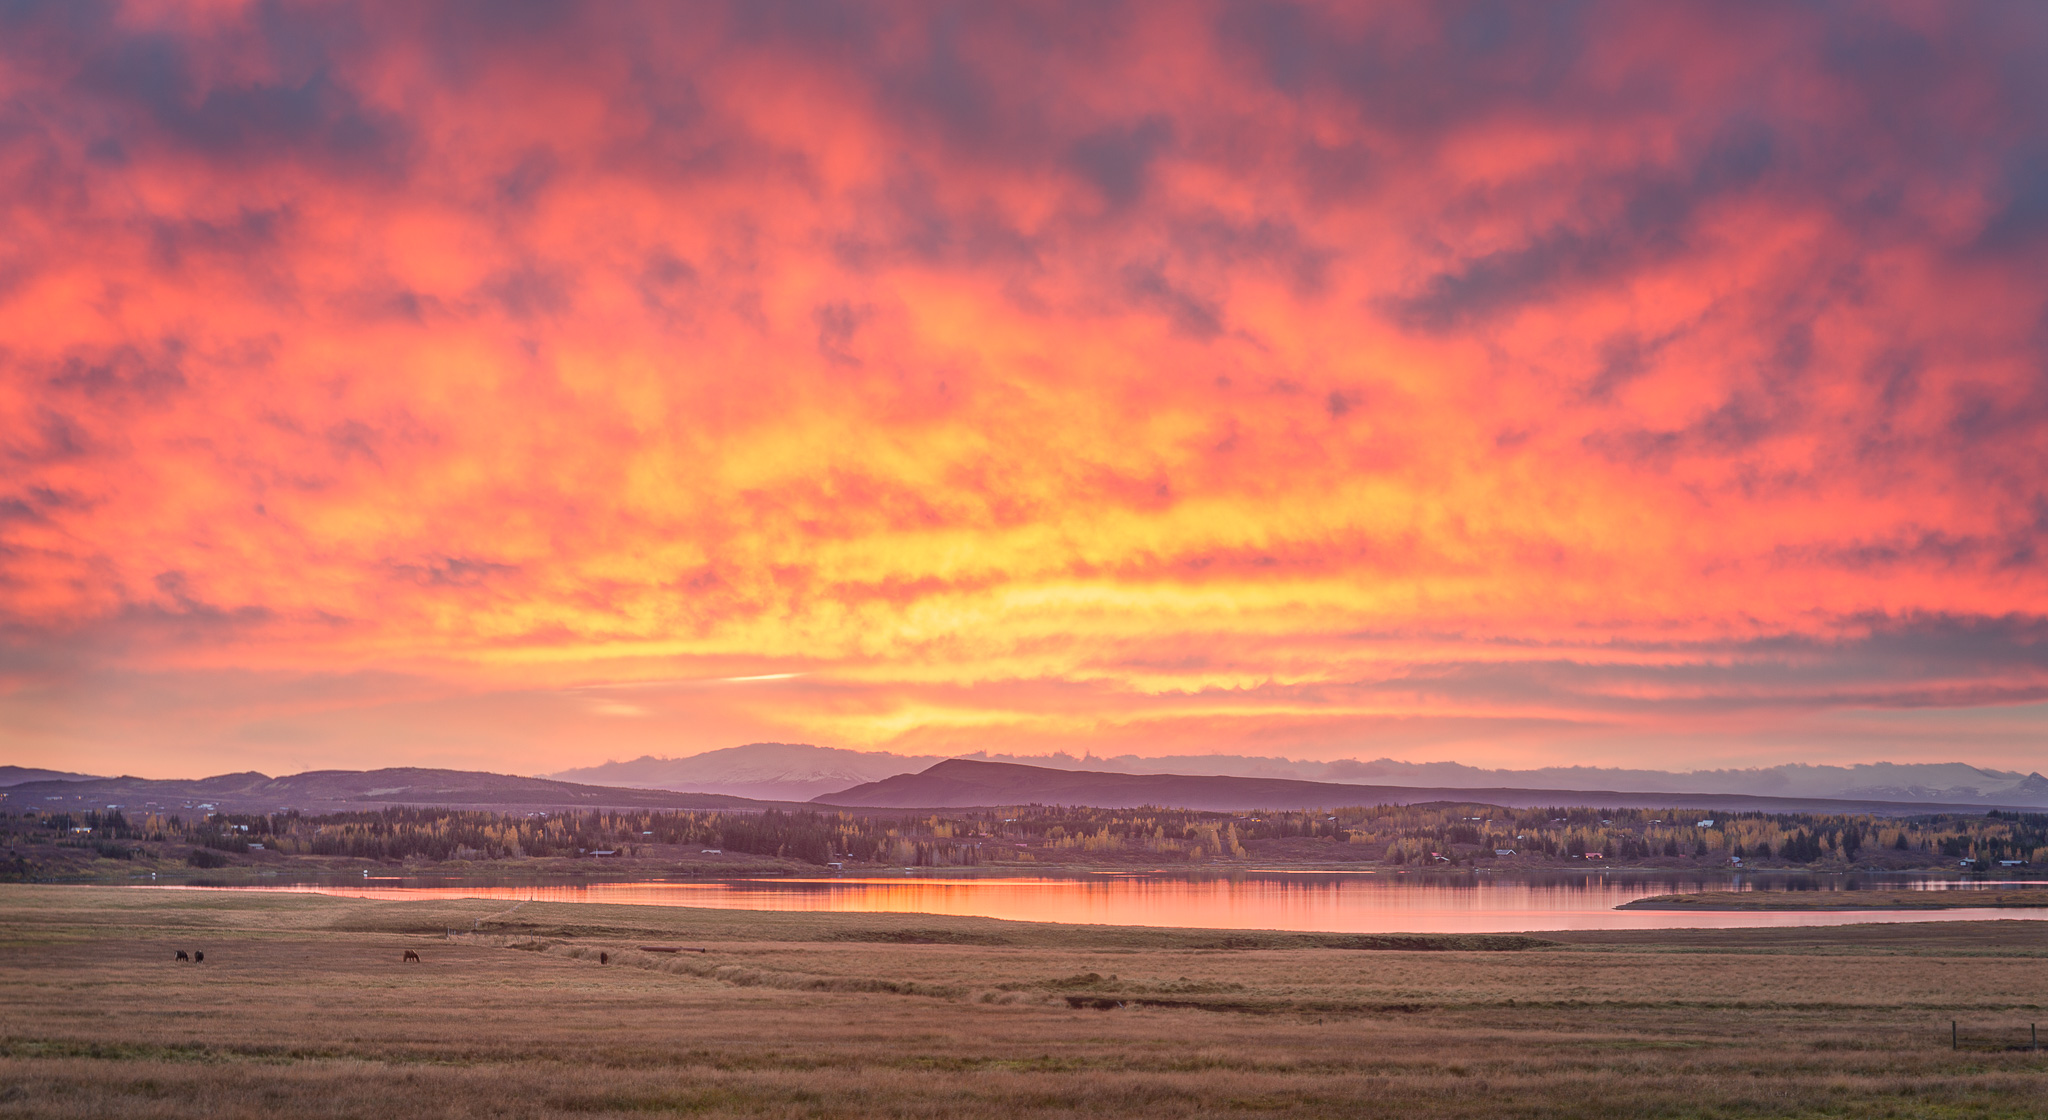 Sunrise over Icelandic pasture picture